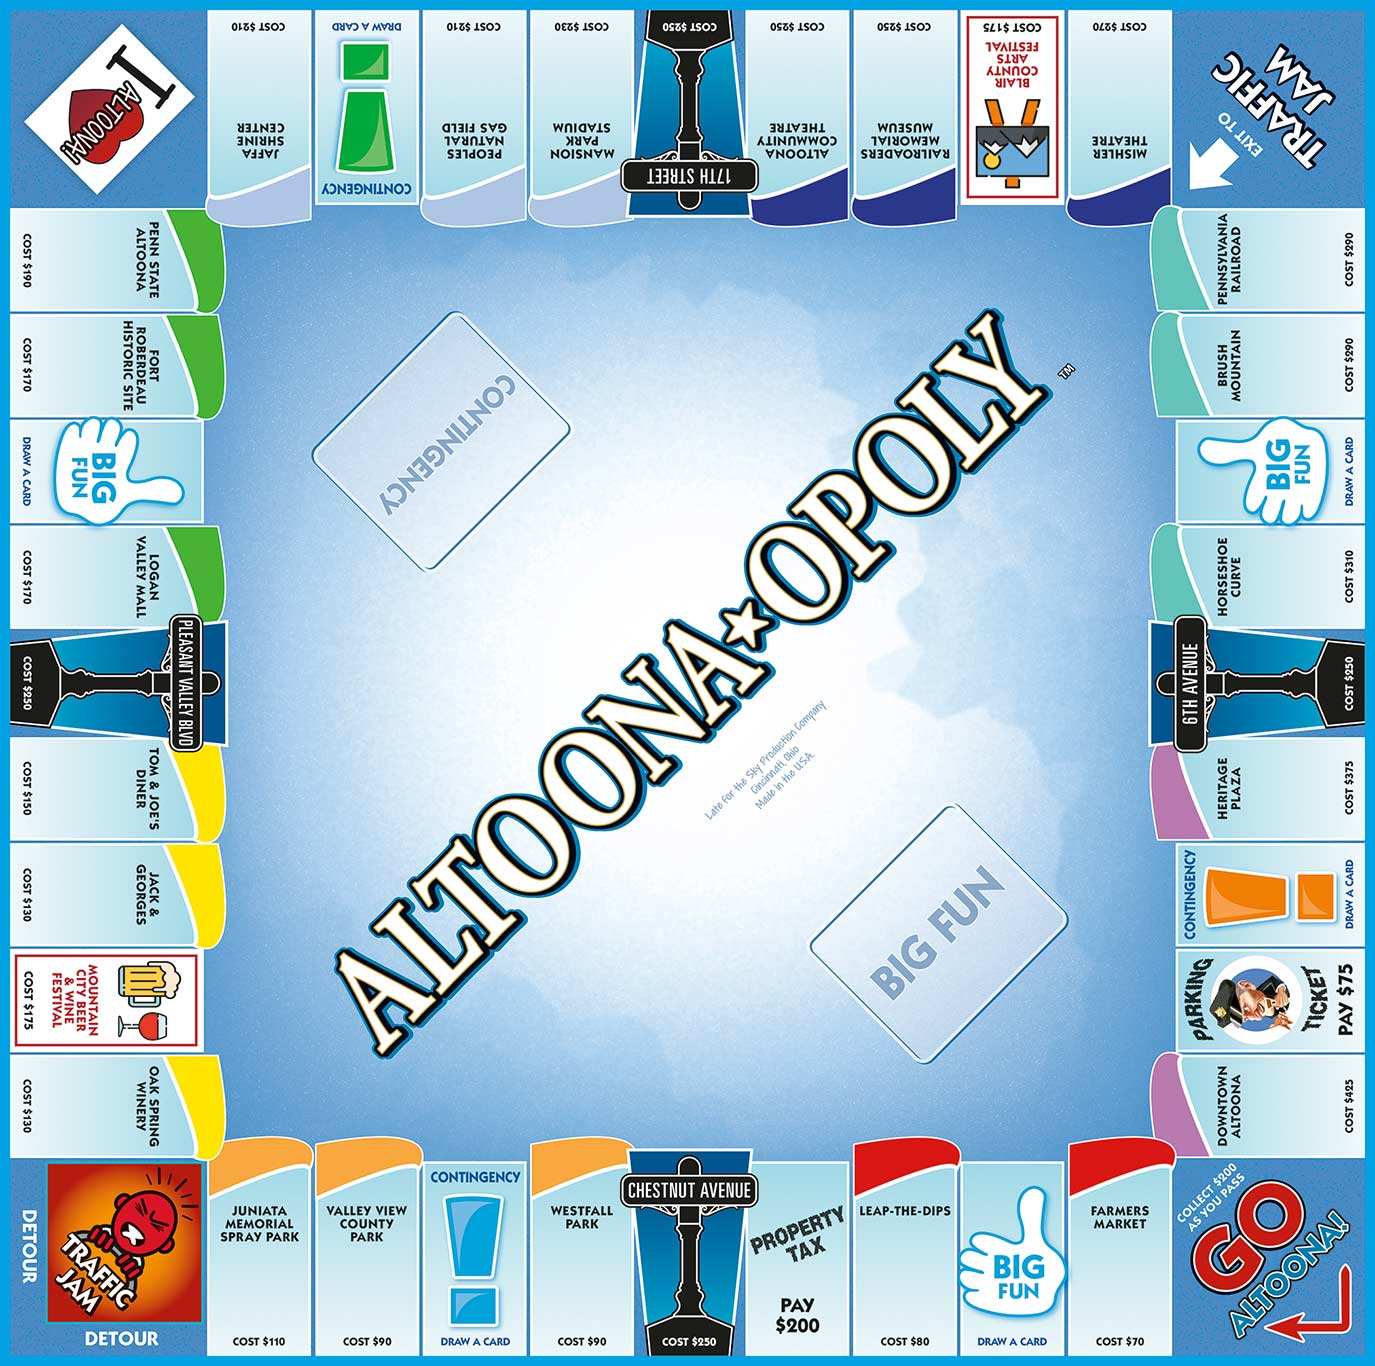 ALTOONA-OPOLY Board Game